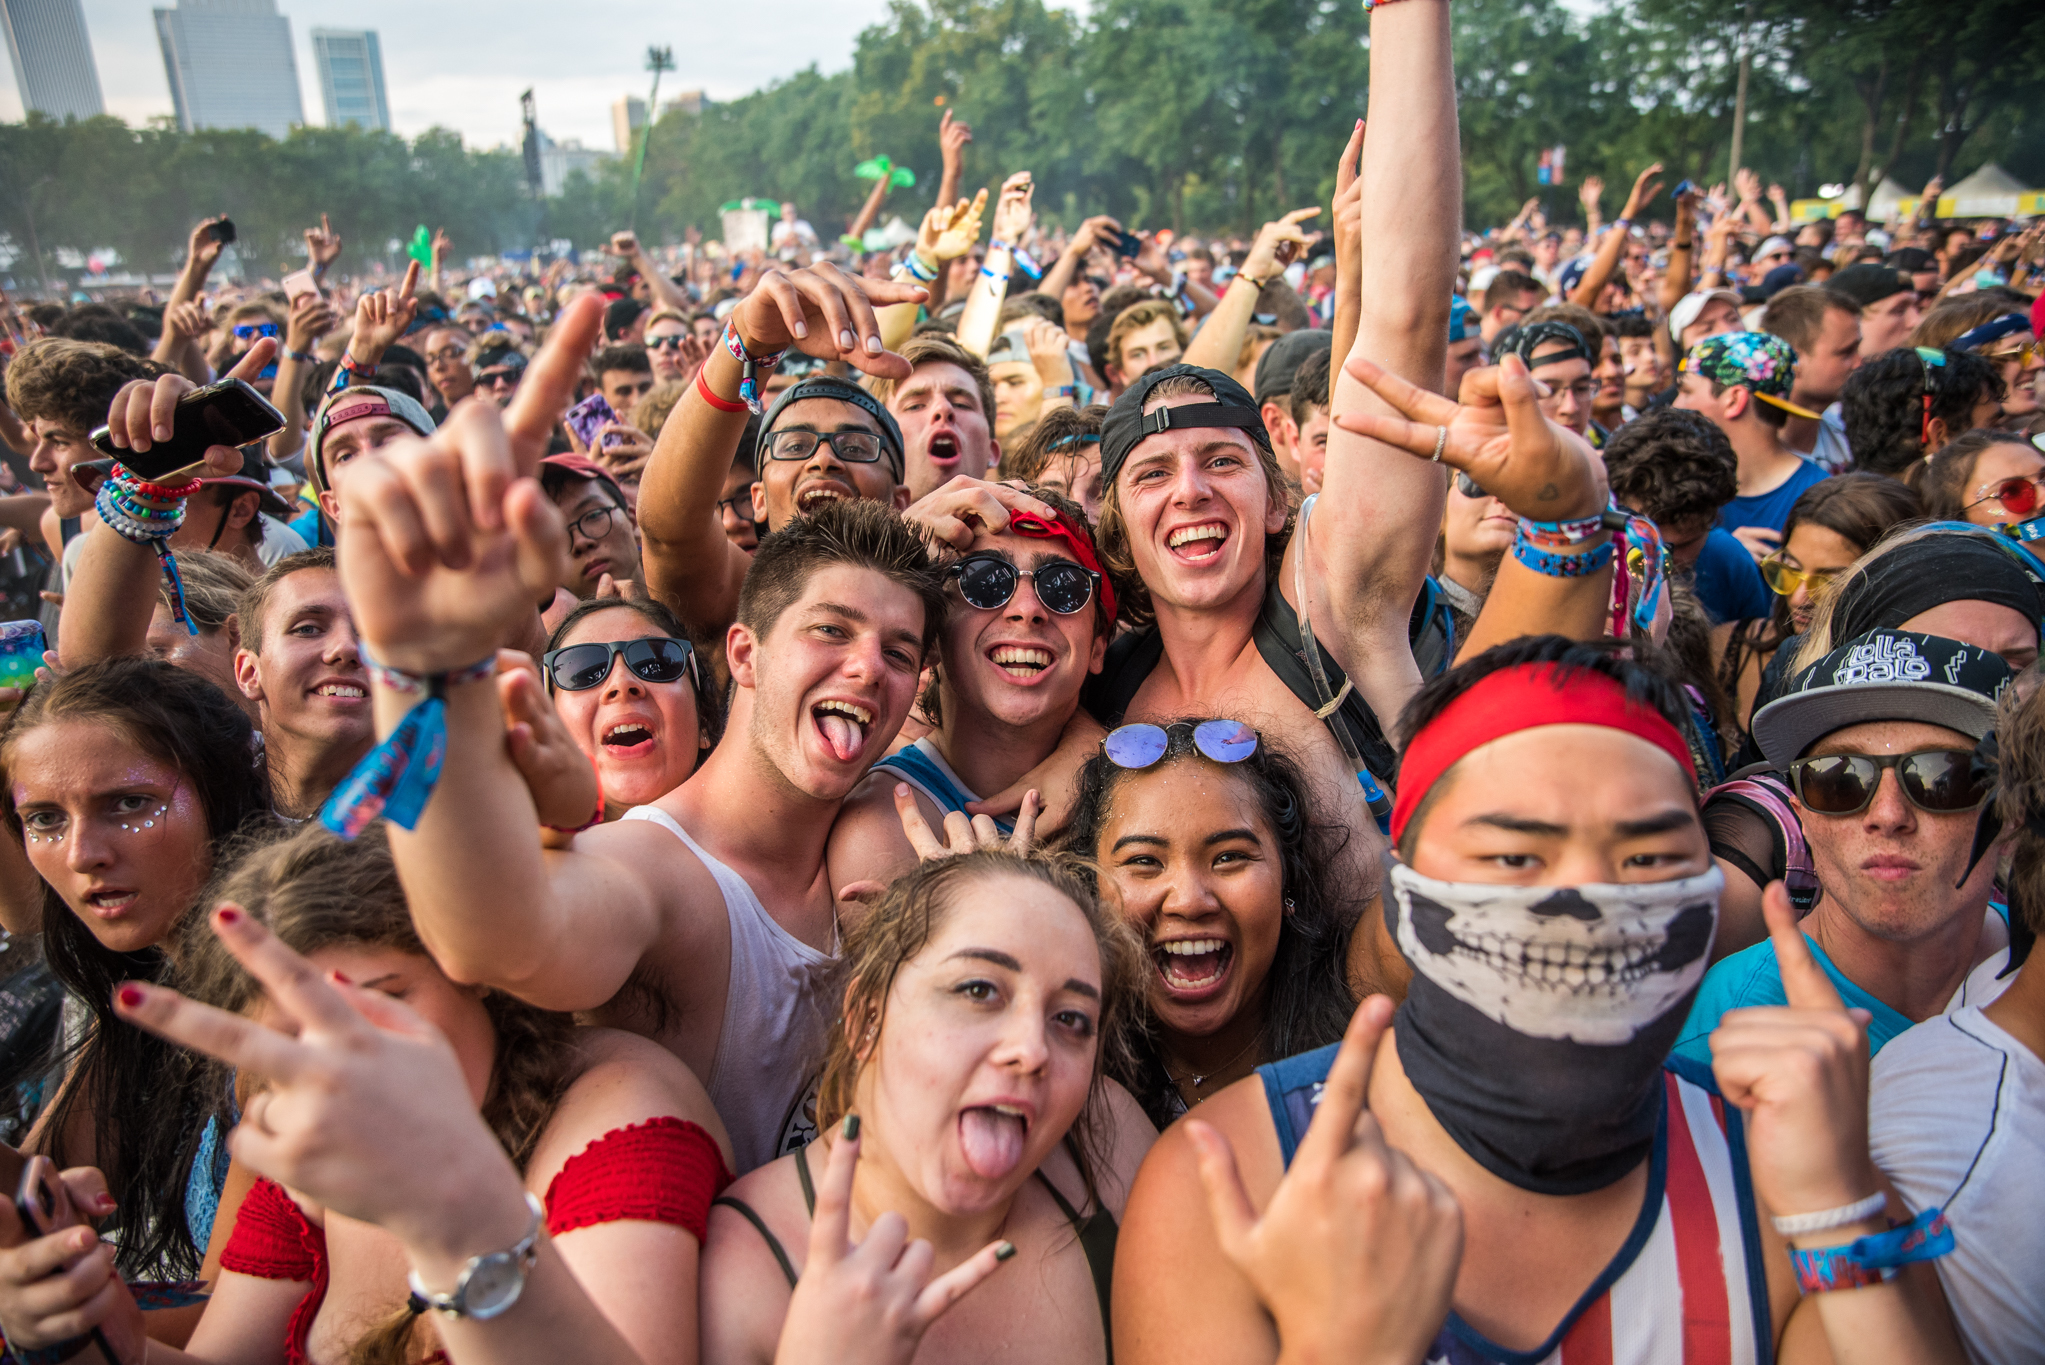 Here's the Lollapalooza 2018 schedule